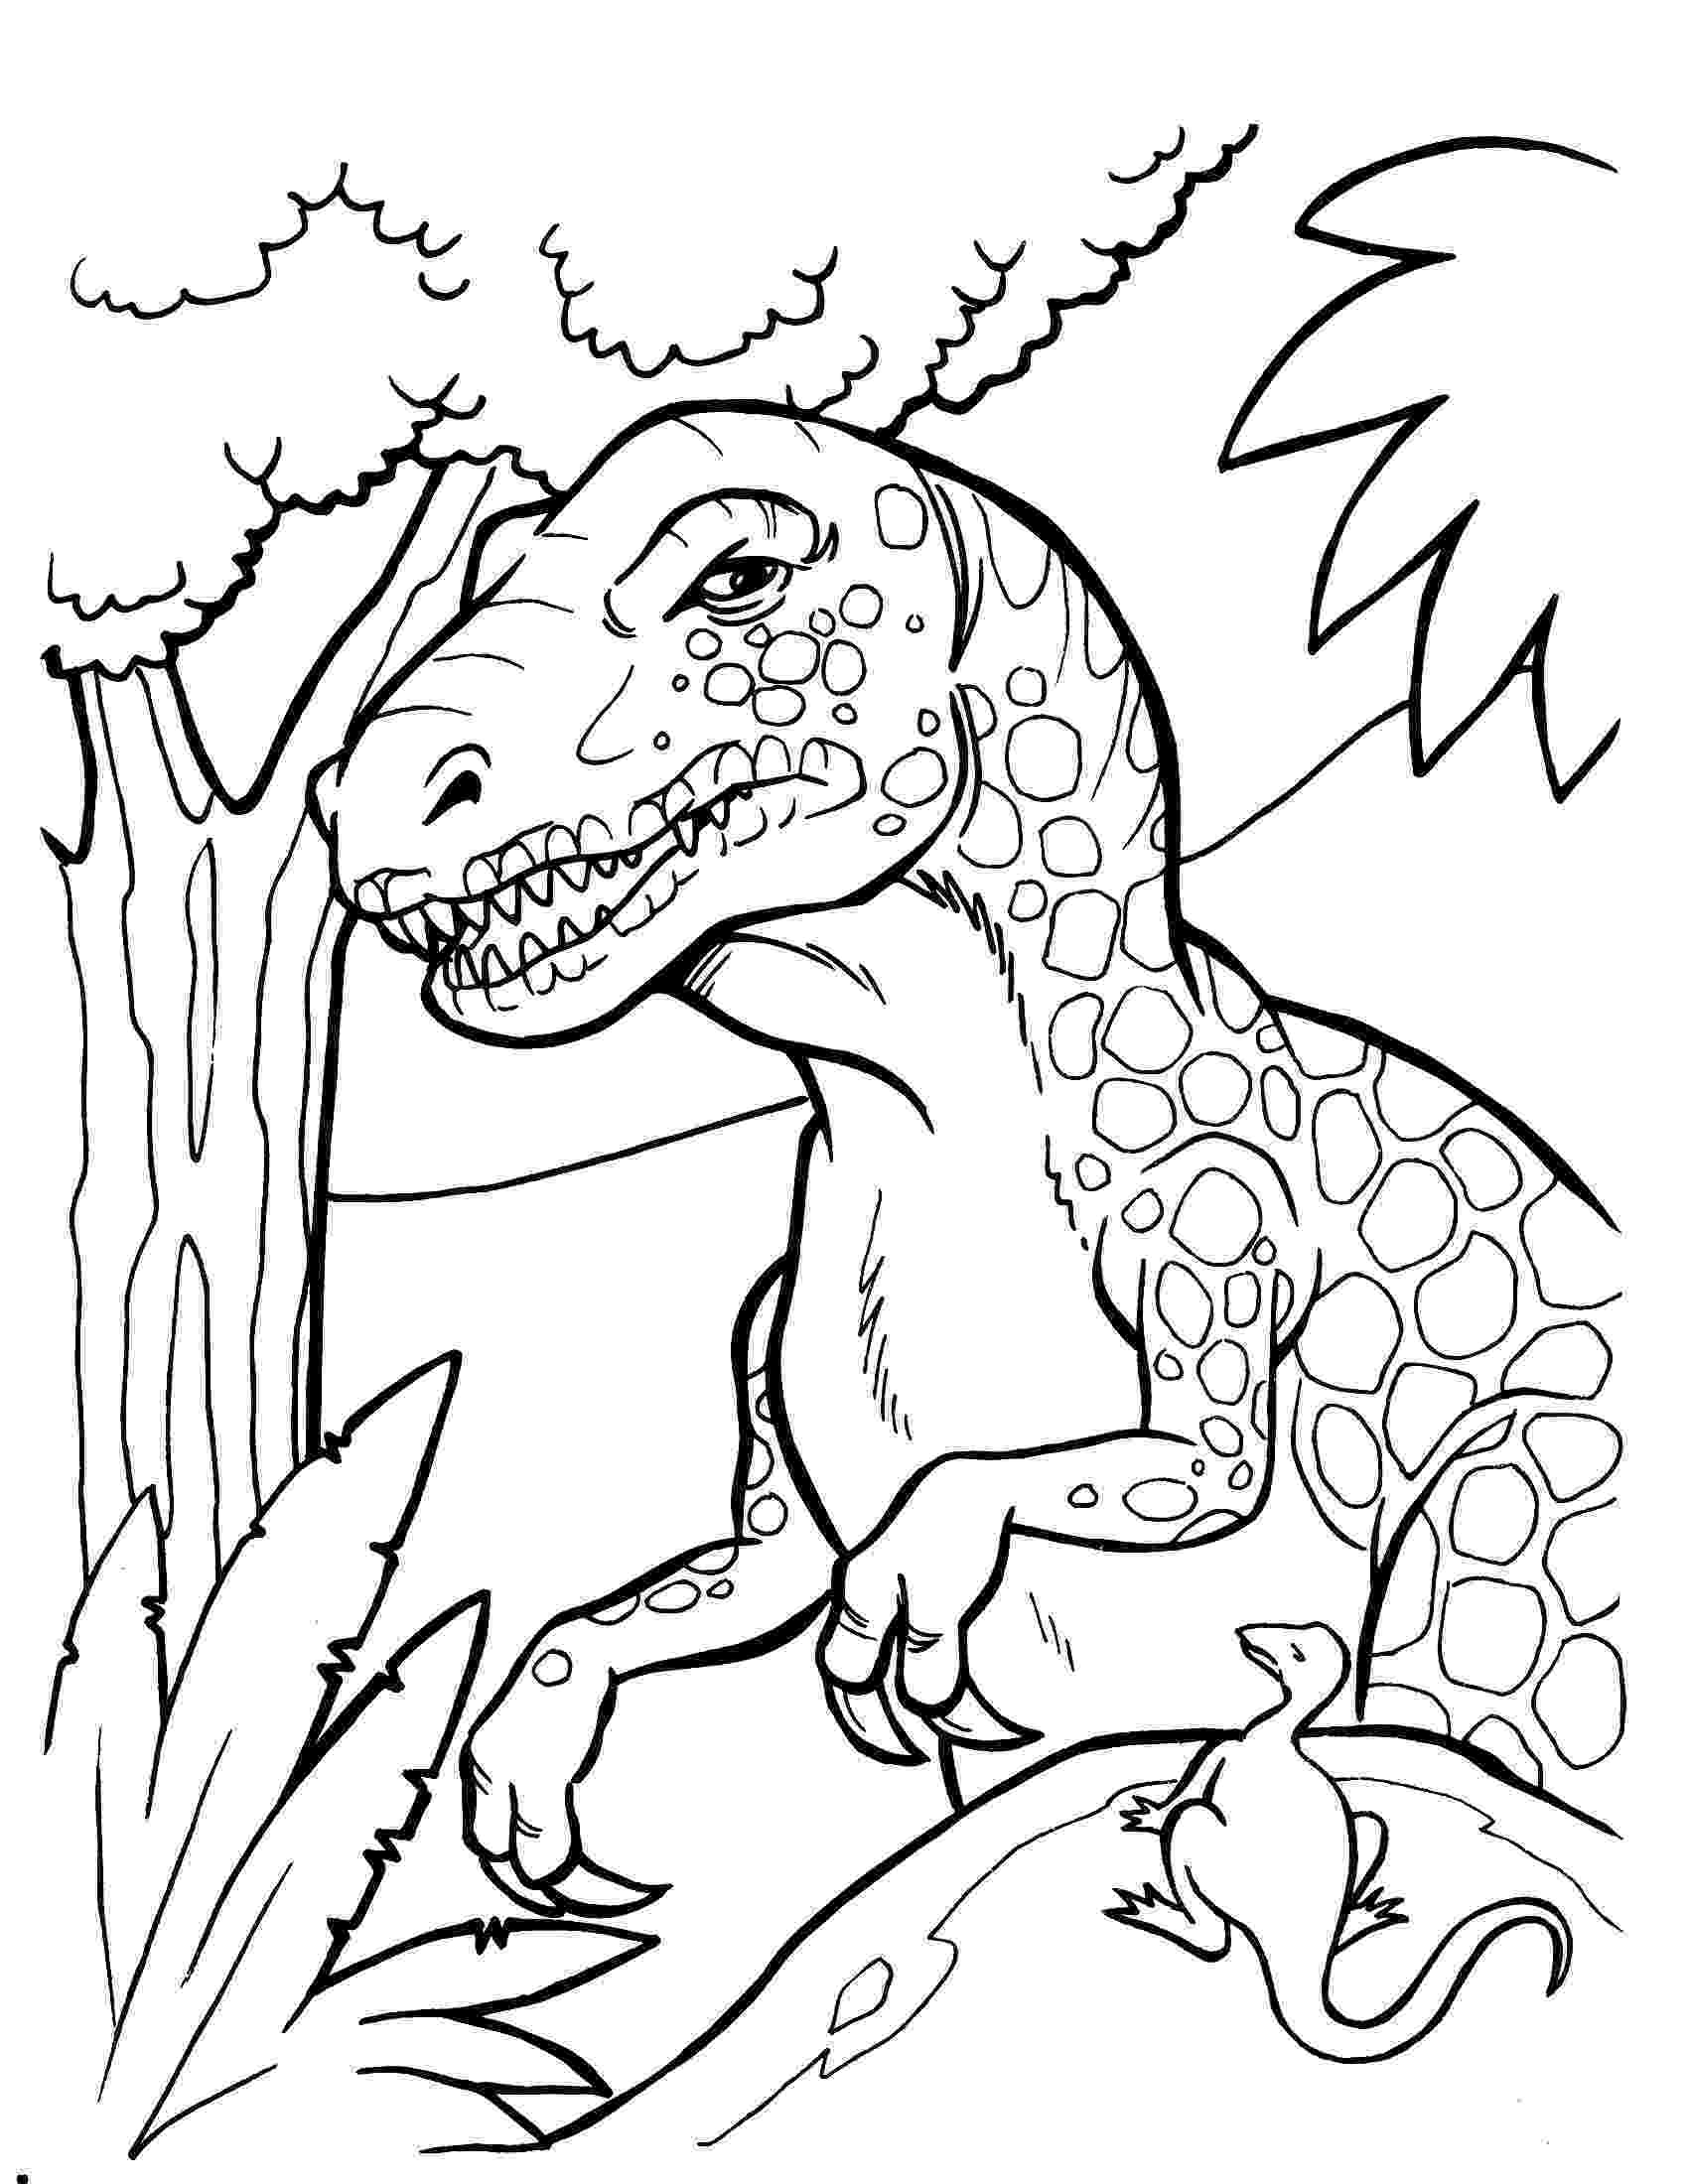 dinosaurs to print coloring pages dinosaur free printable coloring pages to dinosaurs print